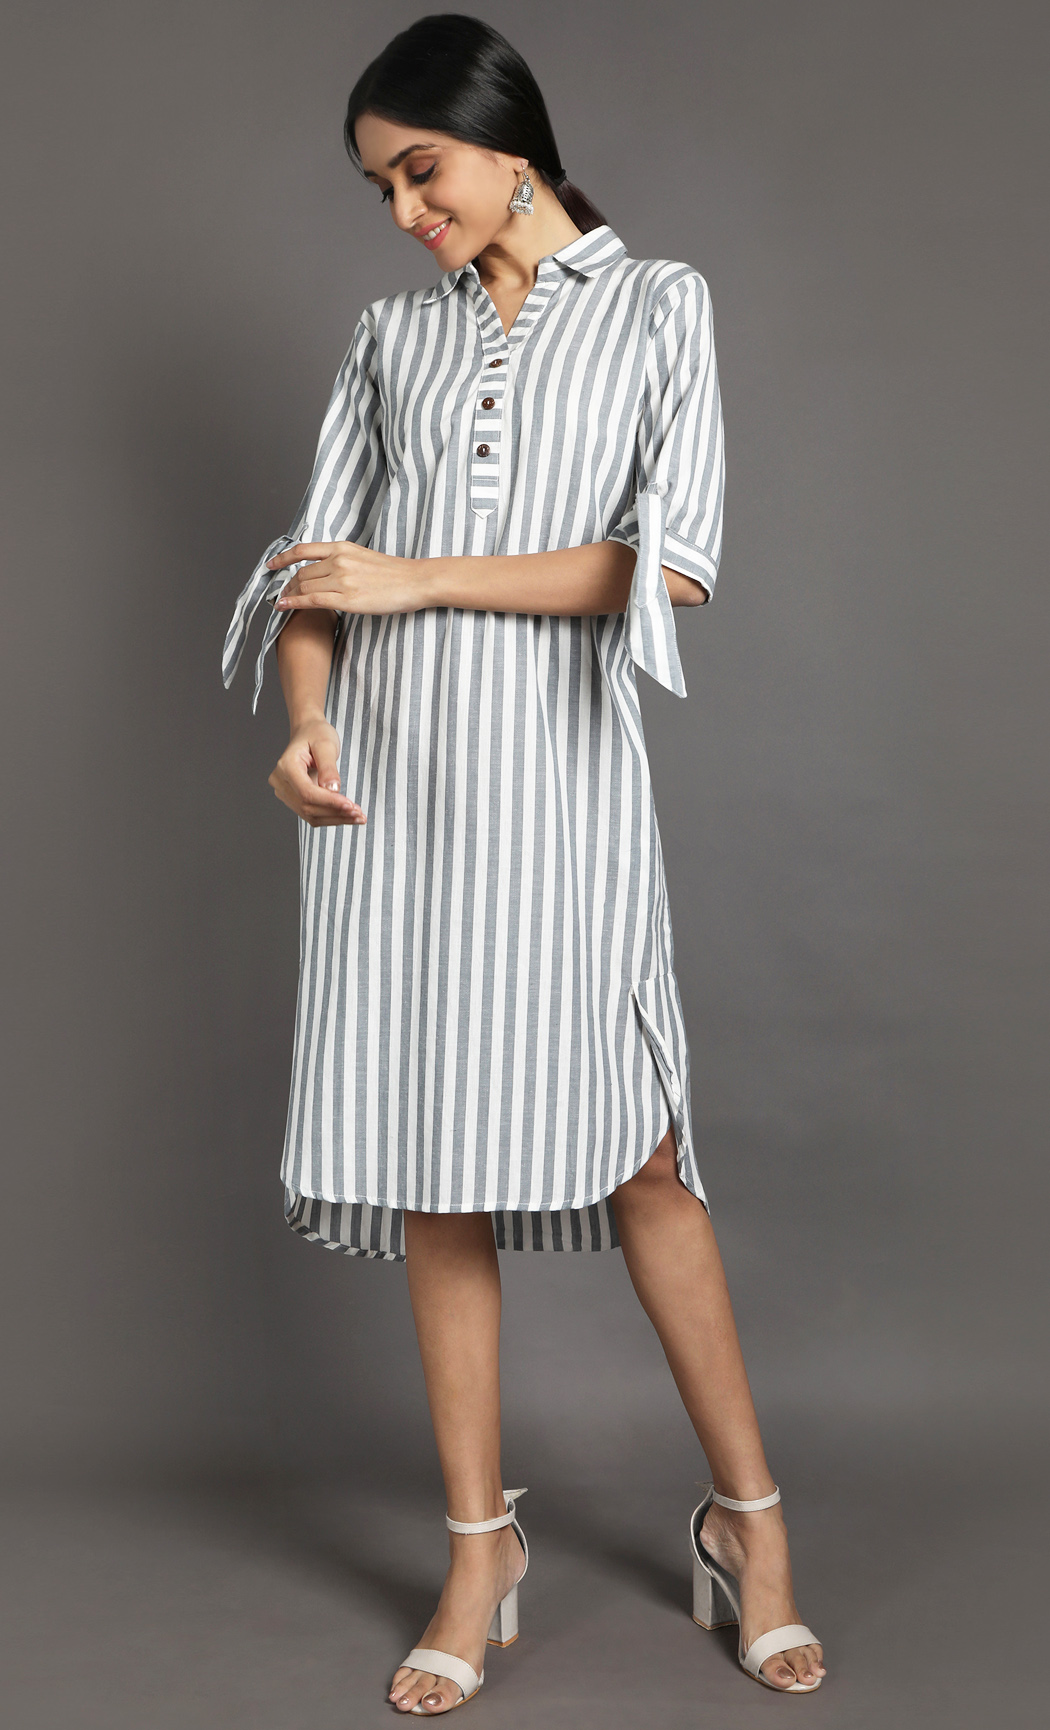 Grey and White Shirt Dress. Buy Online